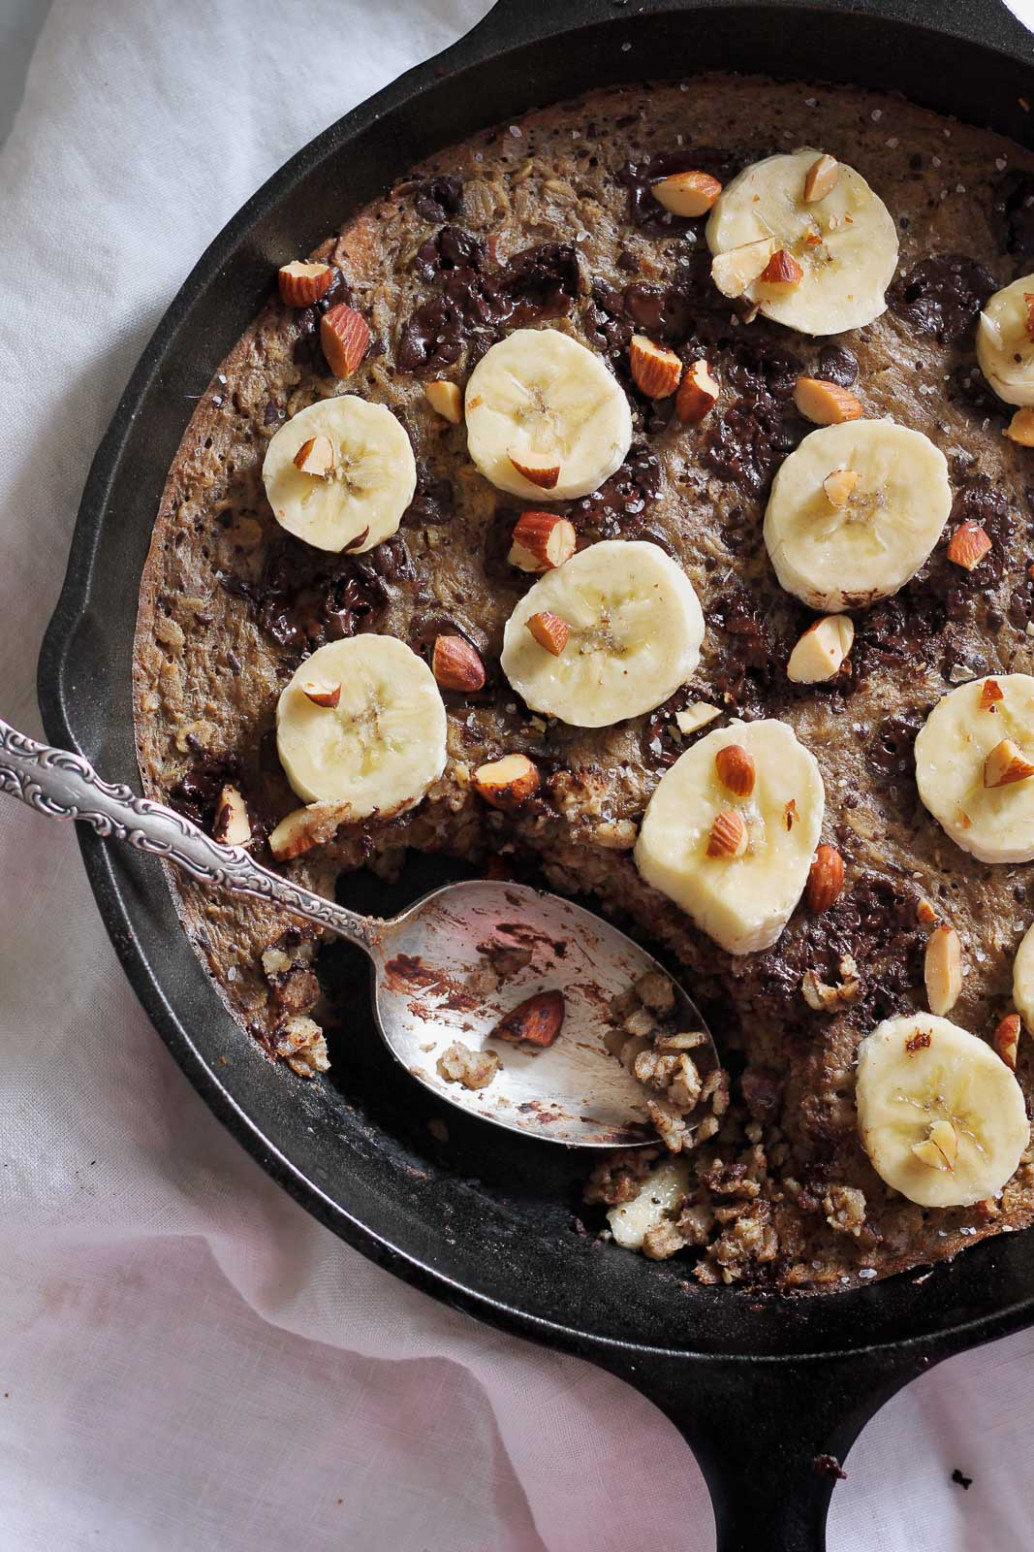 Got ripe bananas? Try out these Healthy Banana Recipes! - healthy recipes ripe bananas